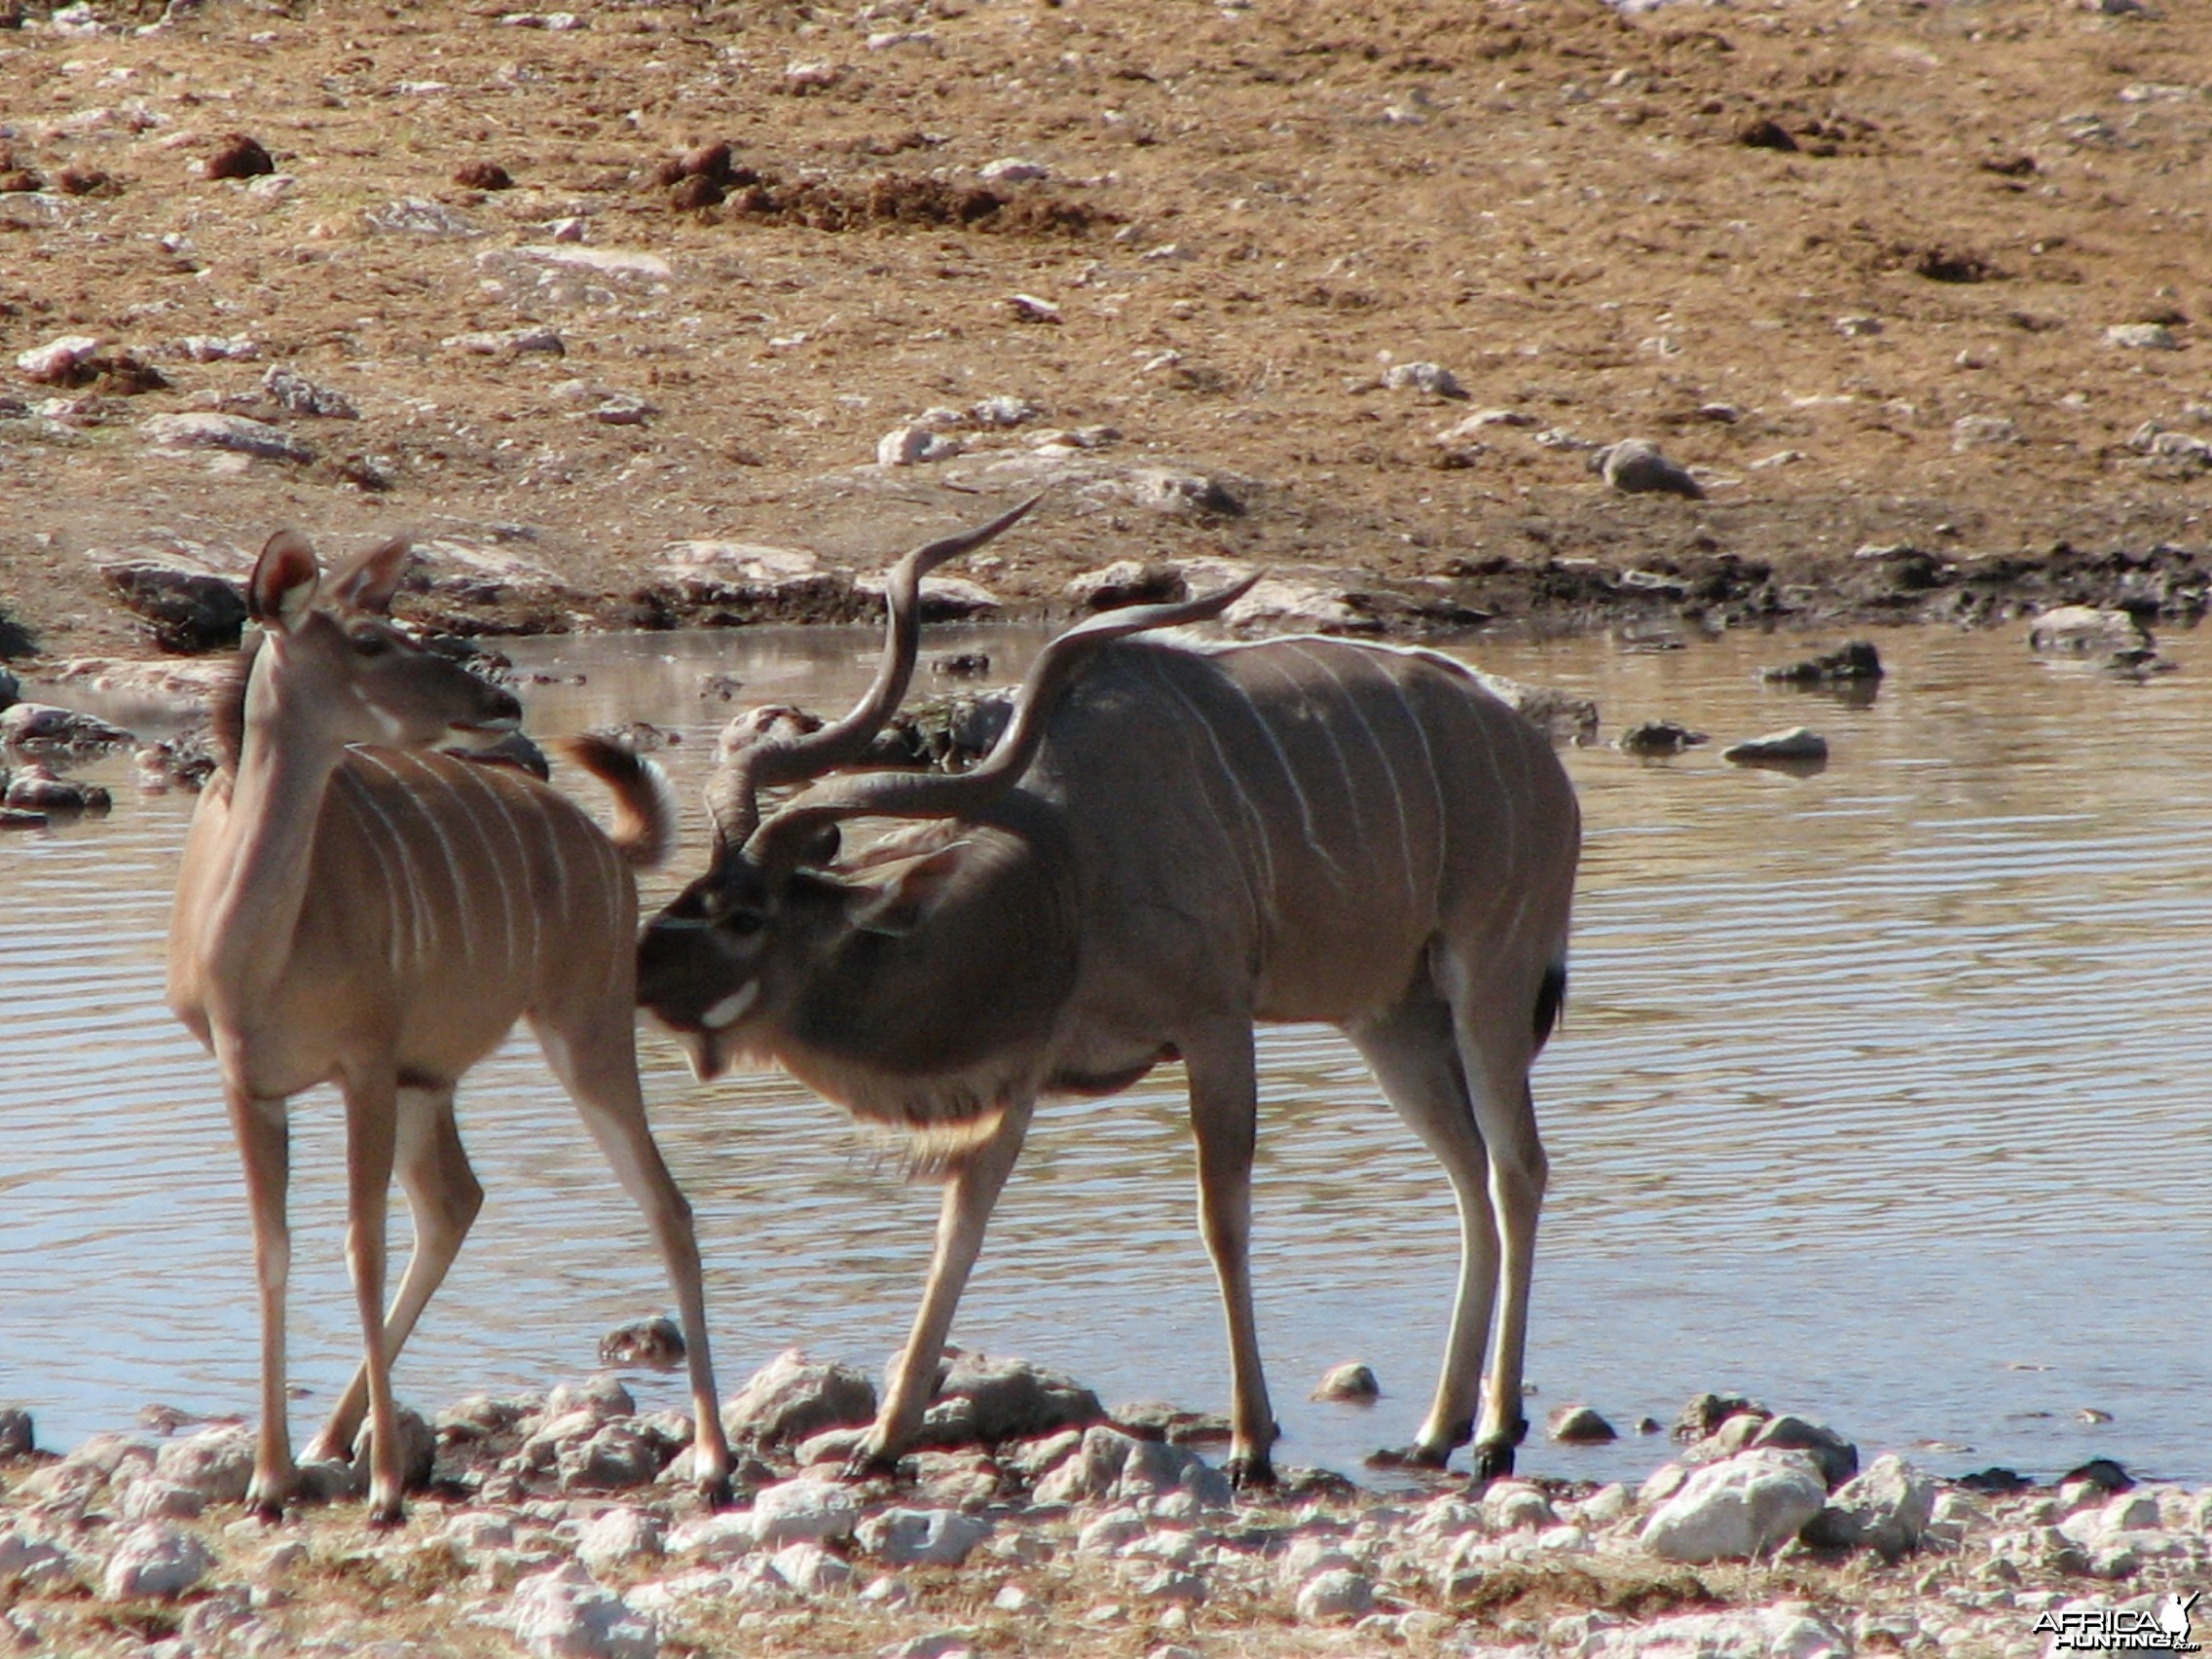 Kudus at Etosha National Park, Namibia